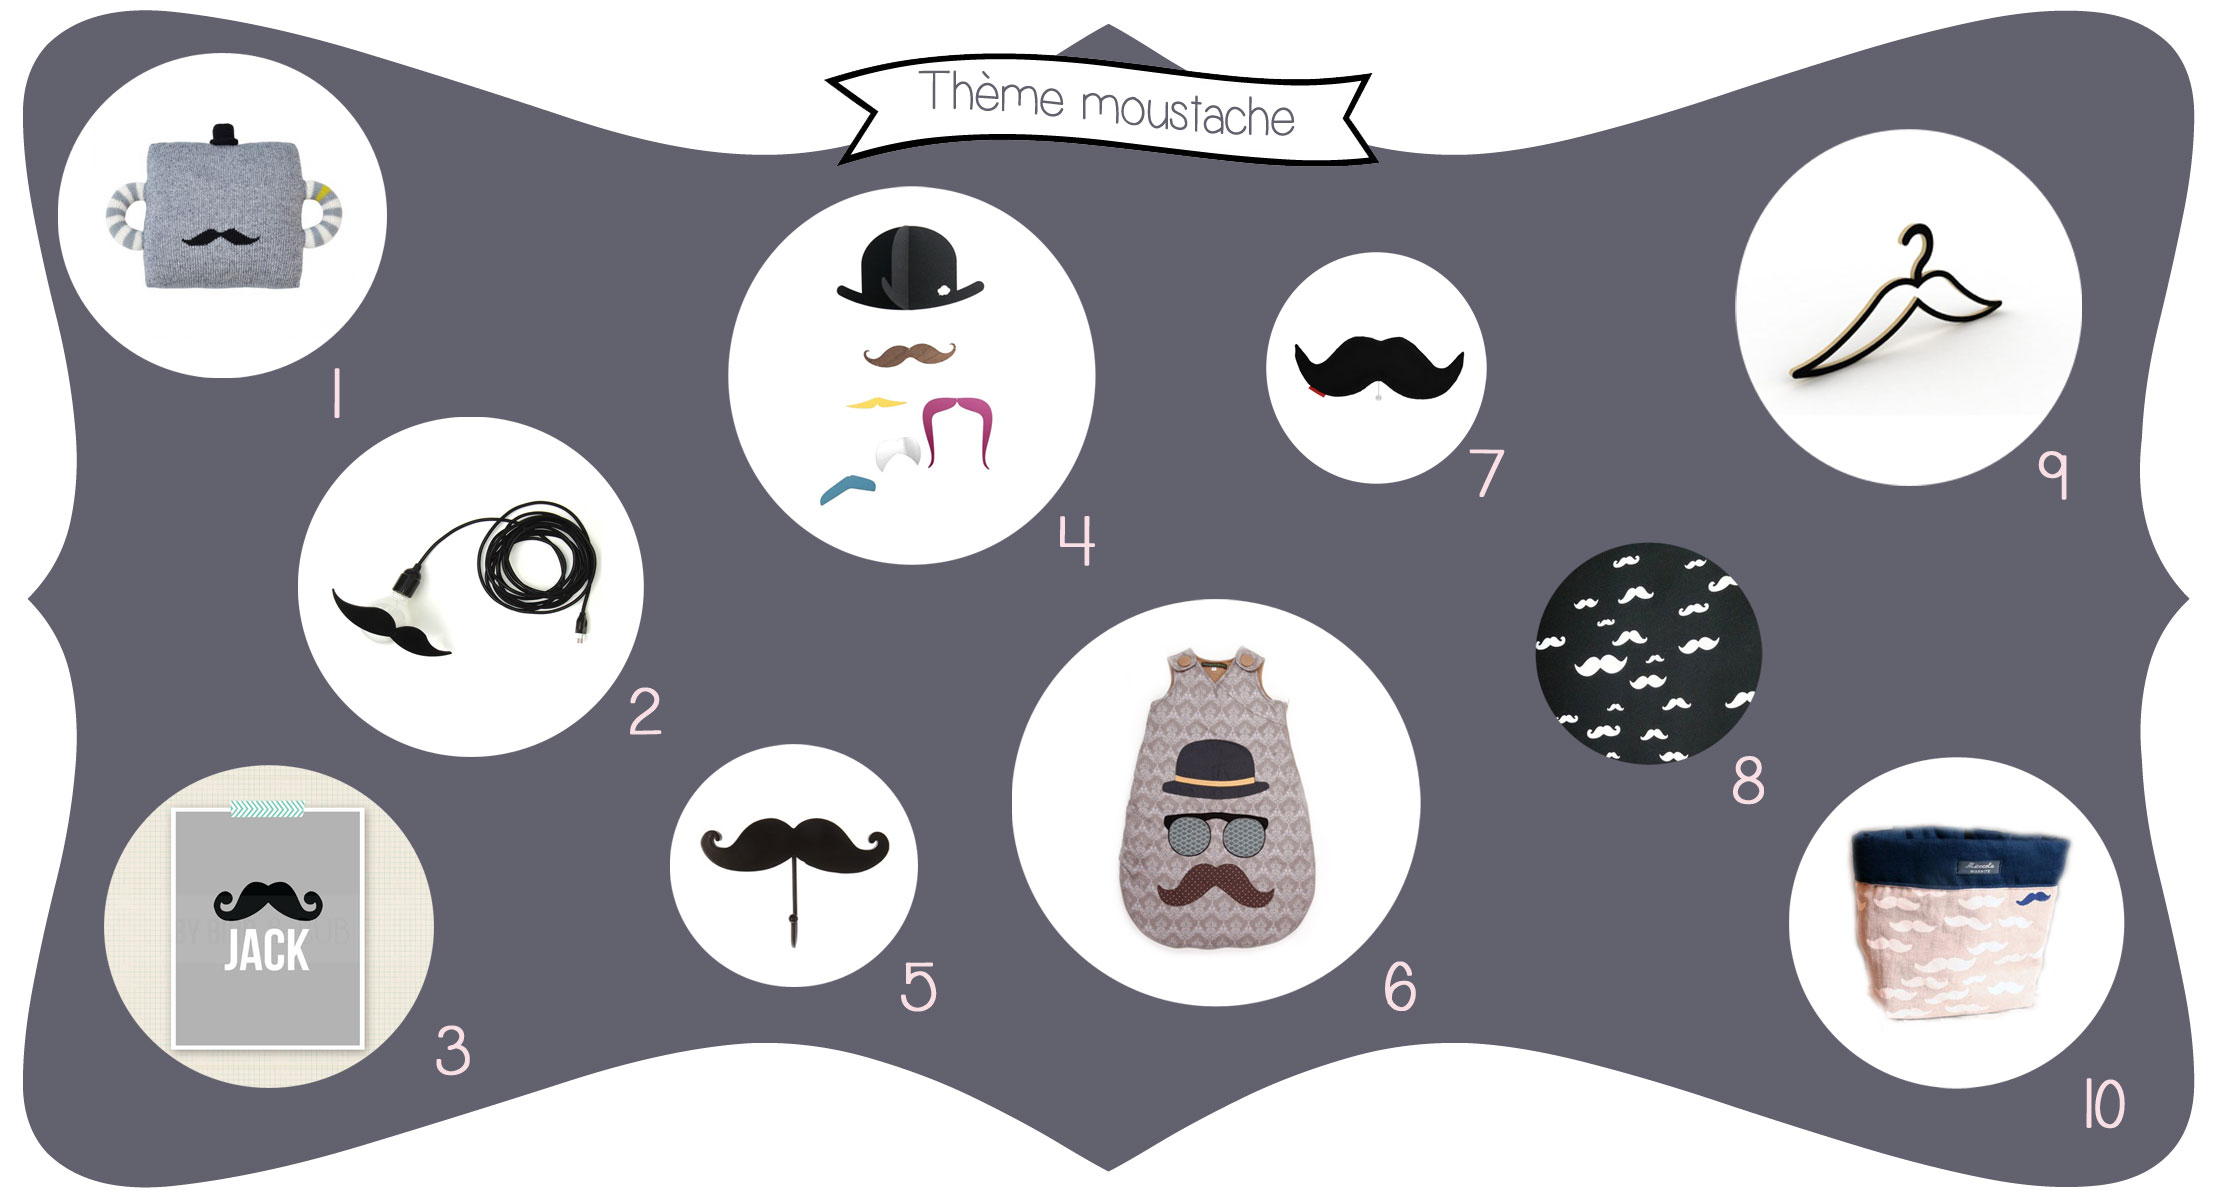 id e d co th me moustache dans ma chambre il y a. Black Bedroom Furniture Sets. Home Design Ideas